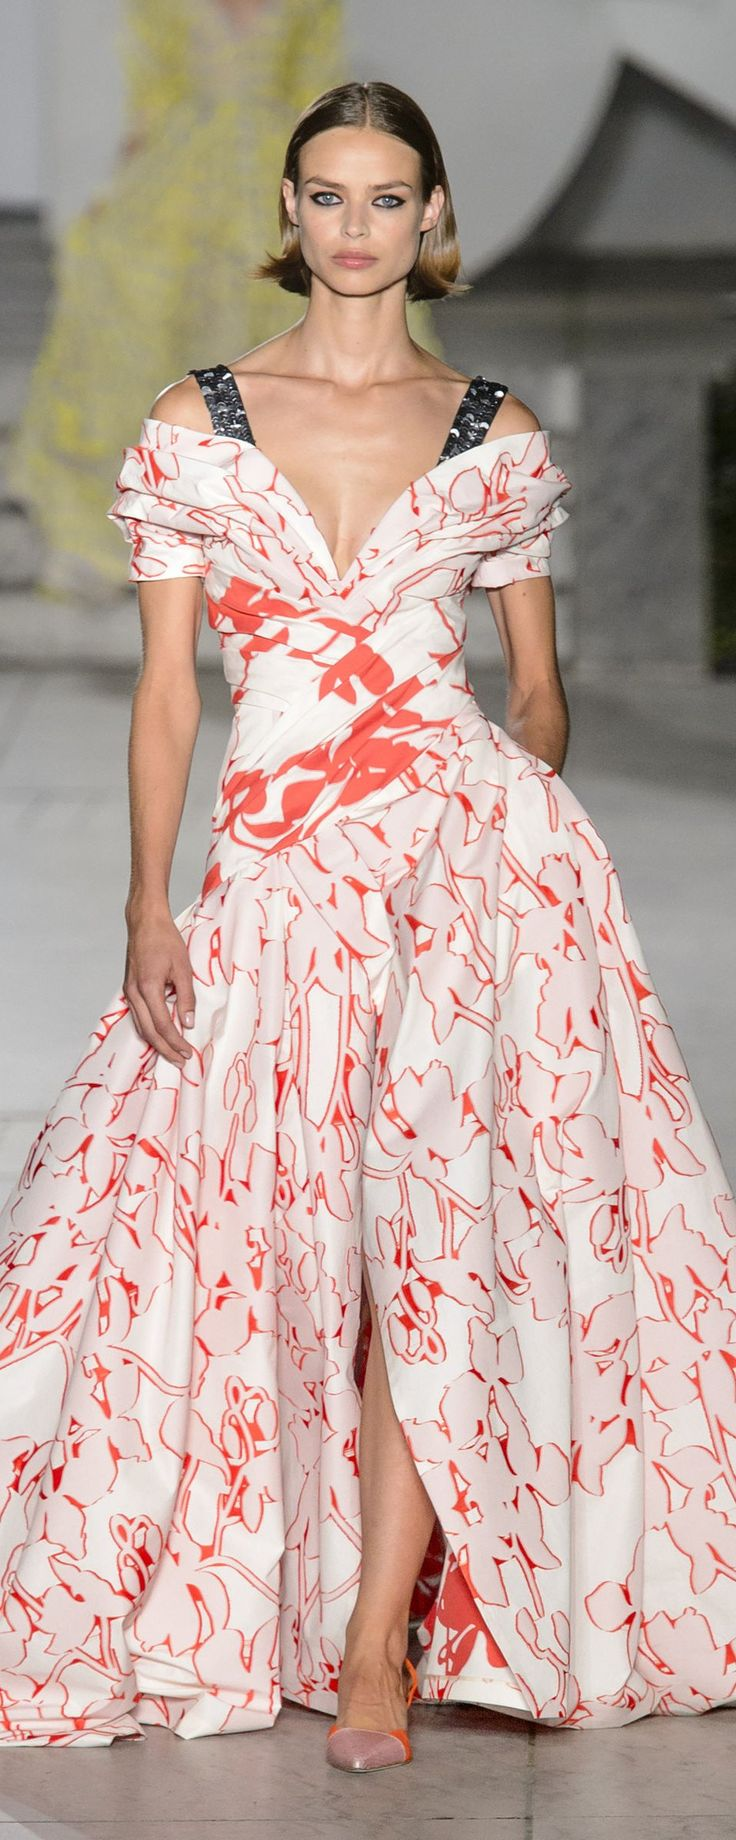 78 best Everything White and Red. images on Pinterest | Red fashion ...